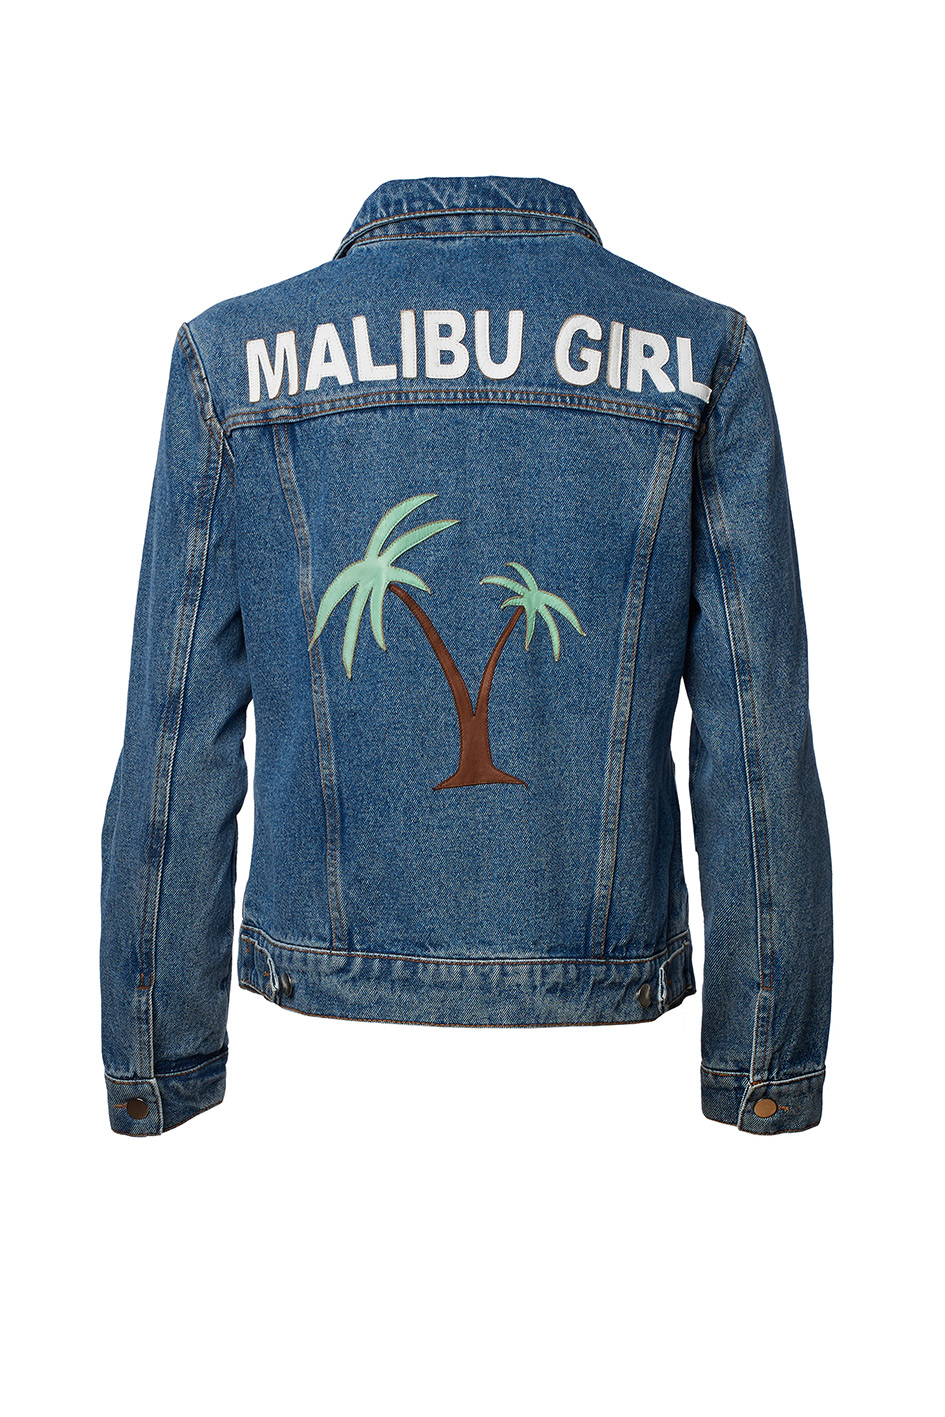 Customised Denim Jacket for Kids by Jn Llovet on curated-crowd.com